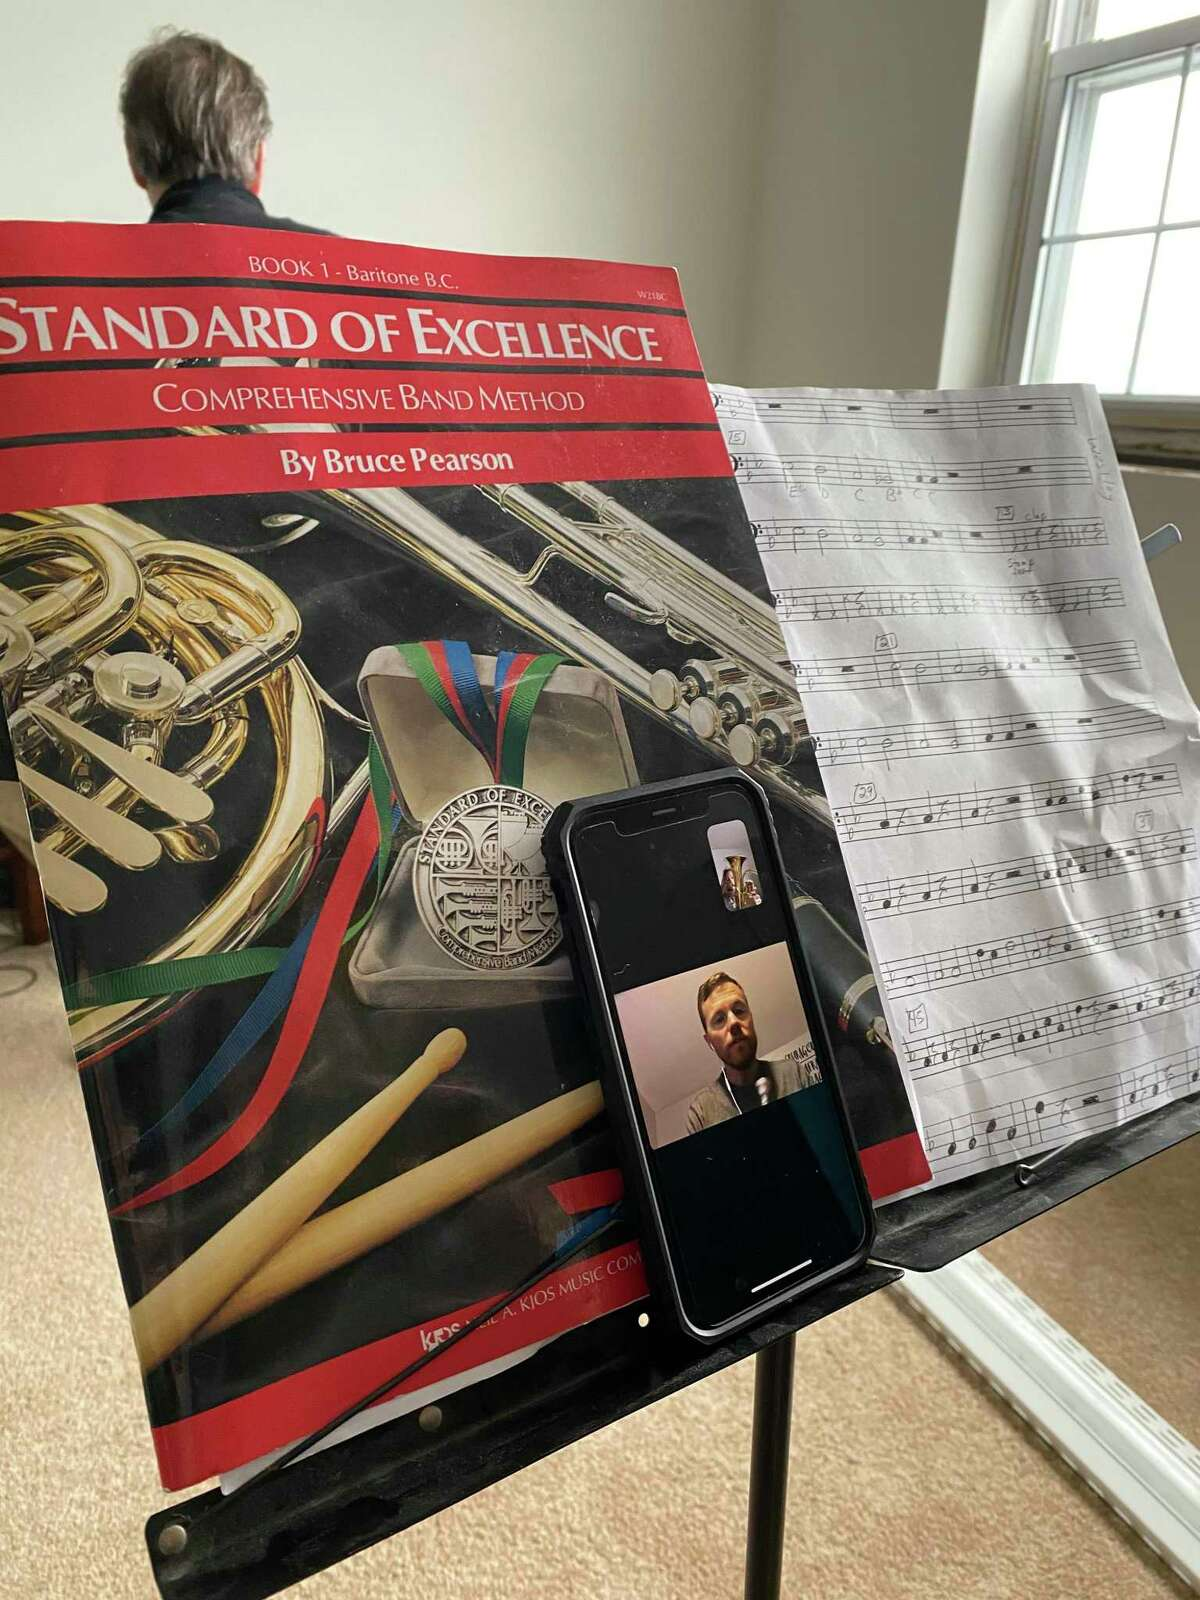 Westley Soreff, a fifth-grade student at Jefferson Elementary School, gets his music stand arranged - book, sheet music, and his teacher on FaceTime.